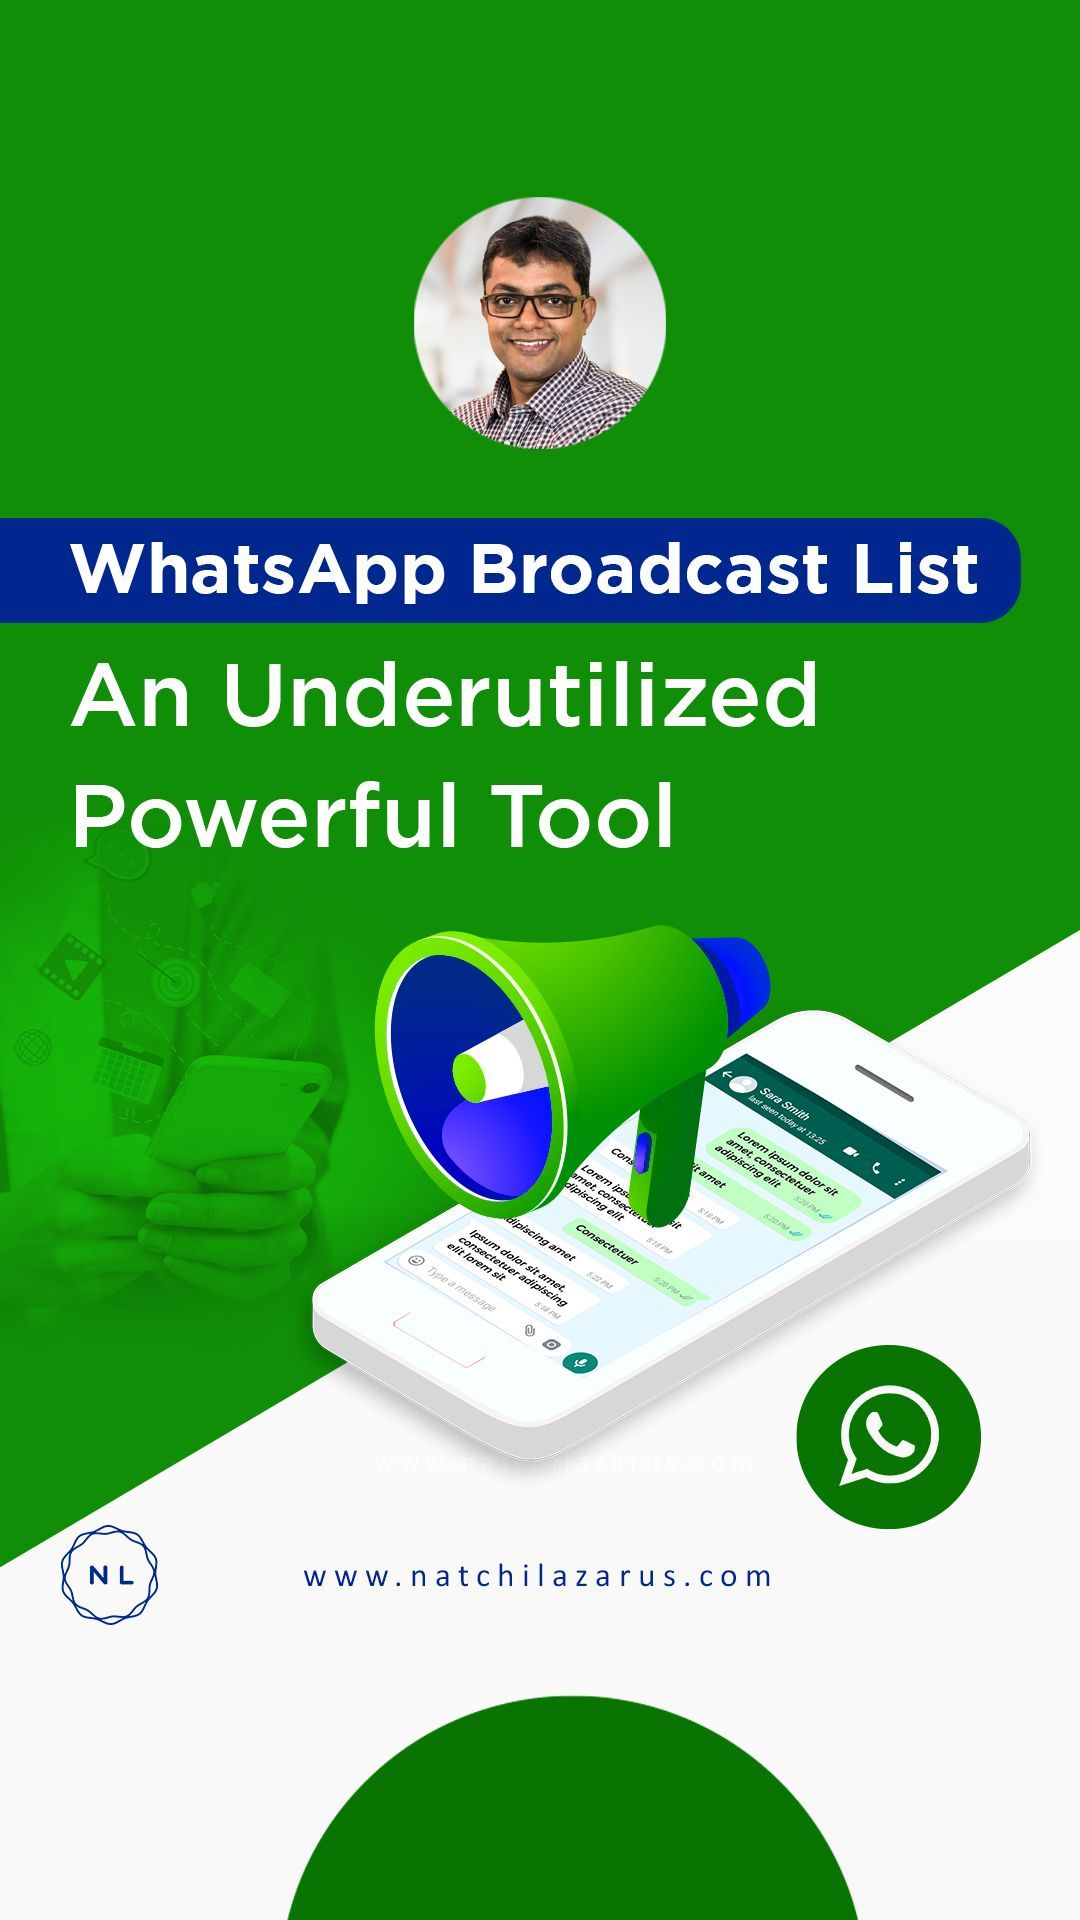 [WhatsApp Guide] How to use WhatsApp Broadcast List for